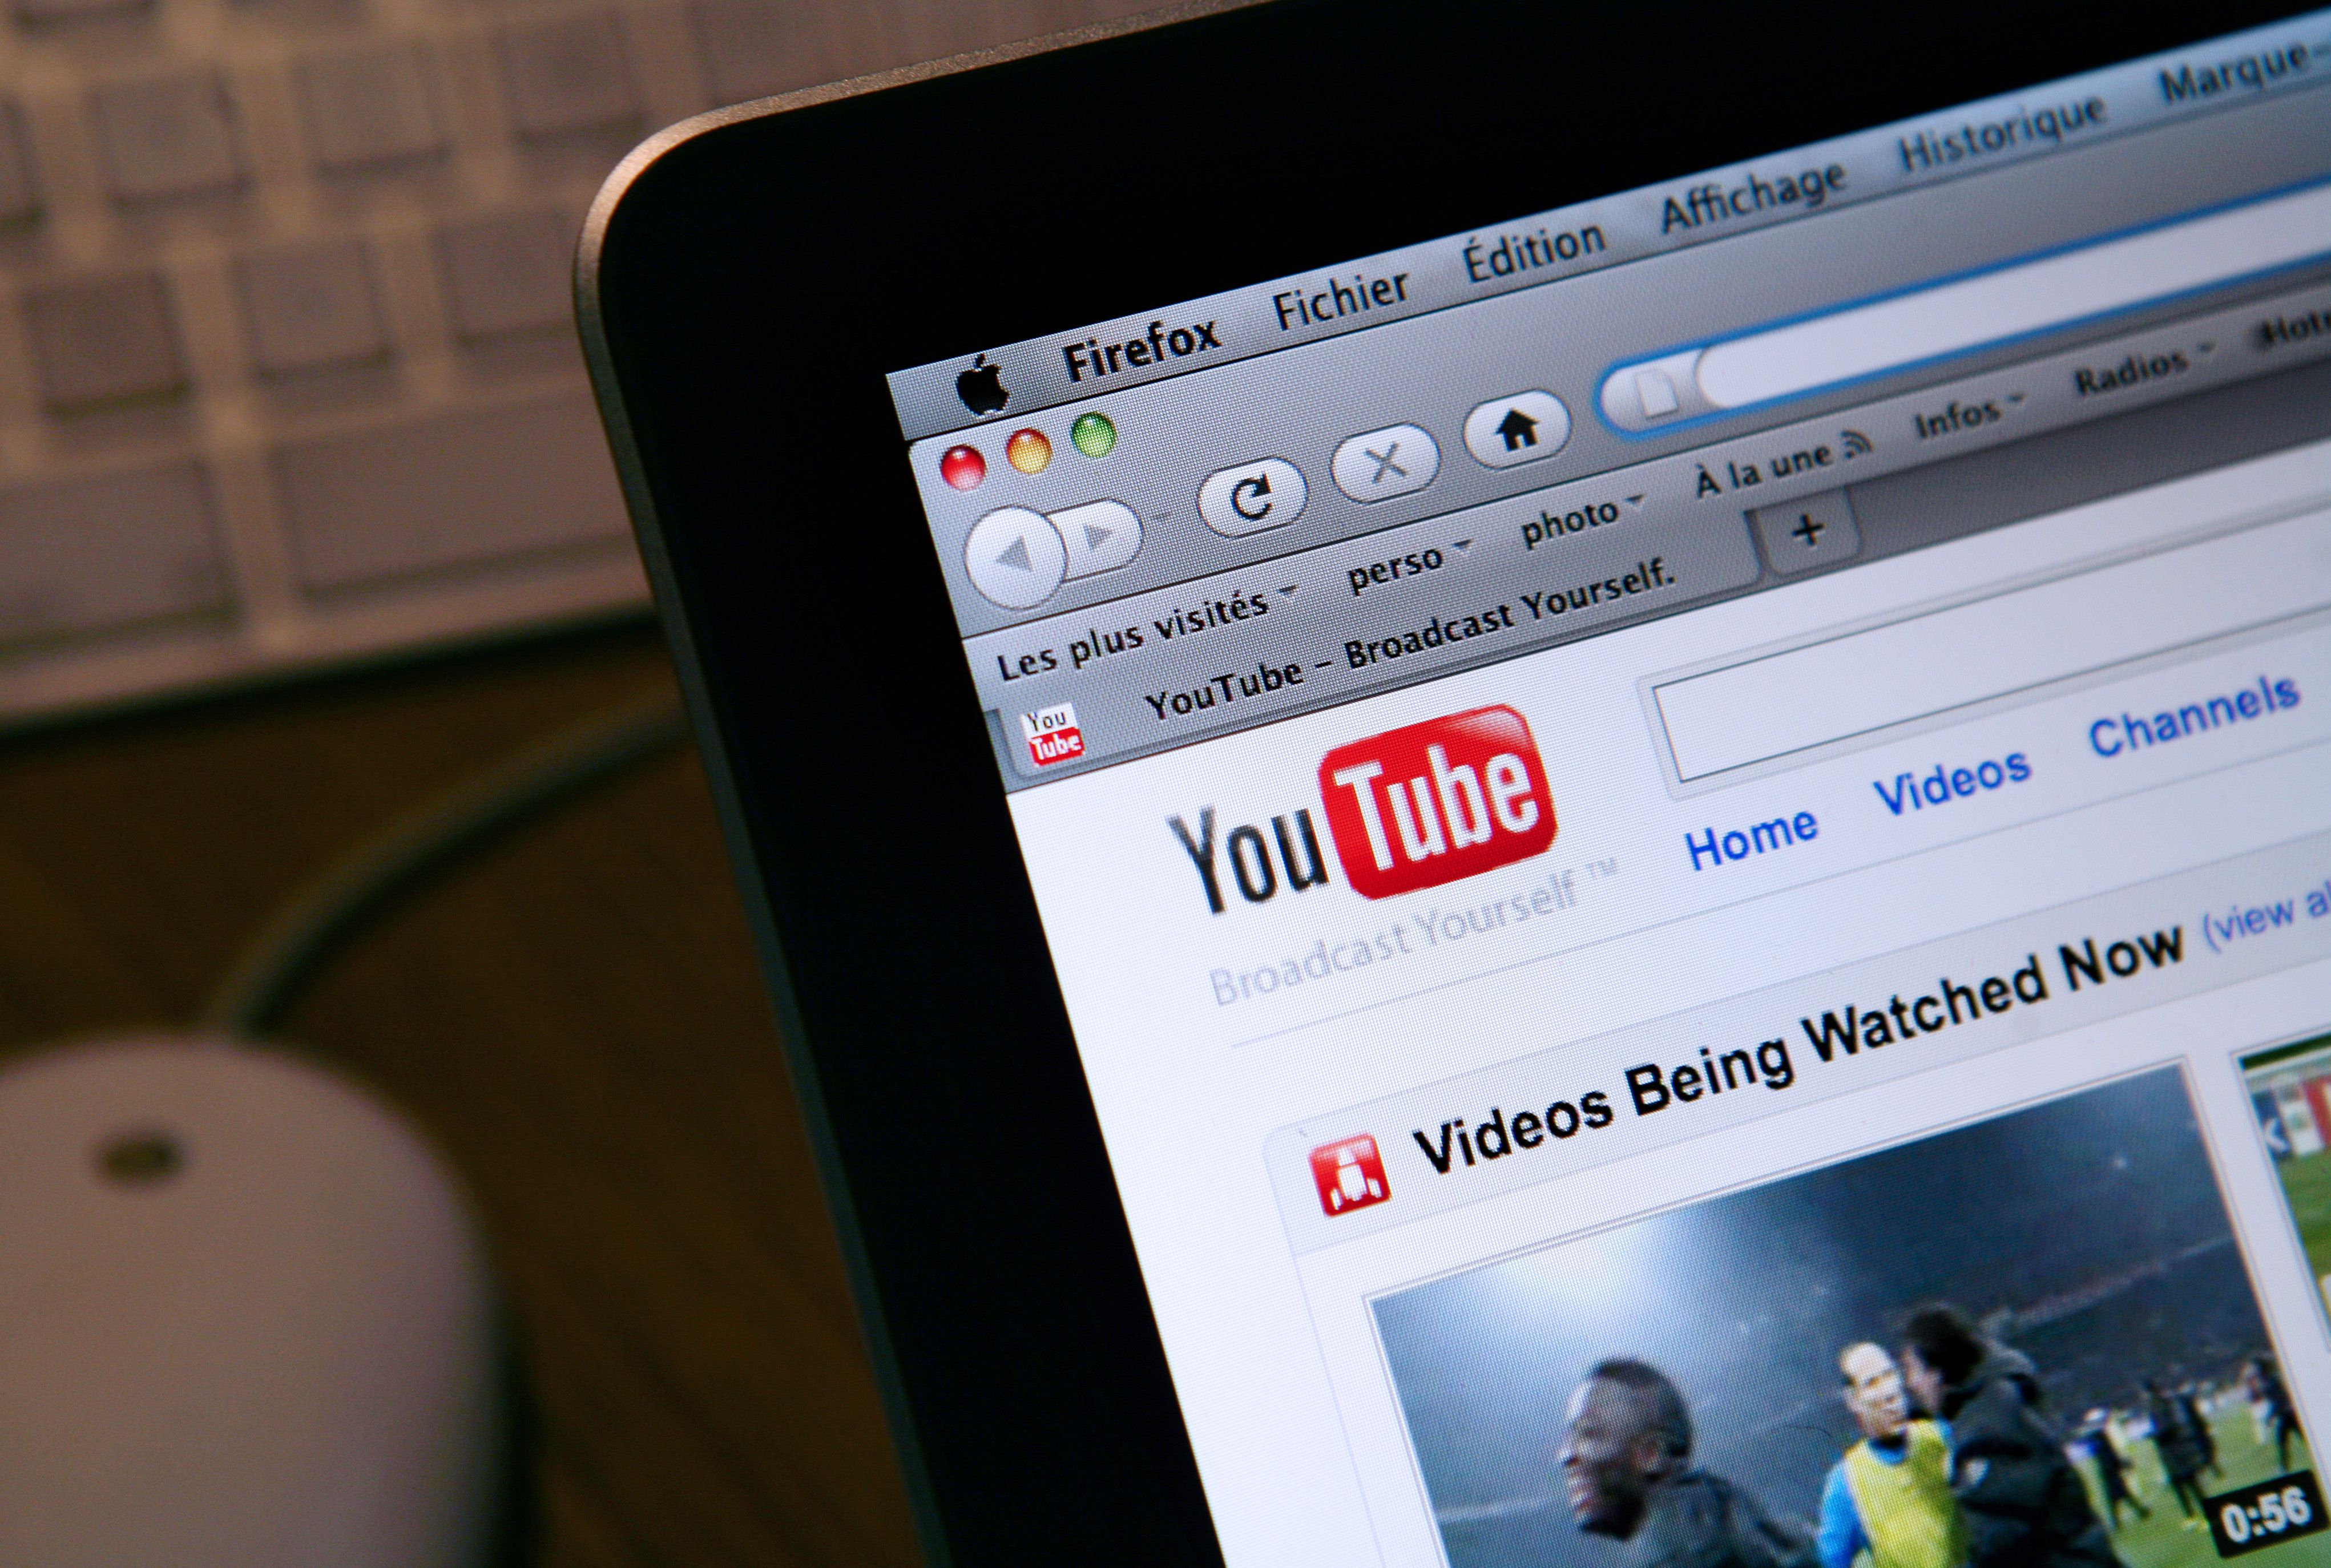 YouTube mobile app gets a Dark Theme | The Star Online